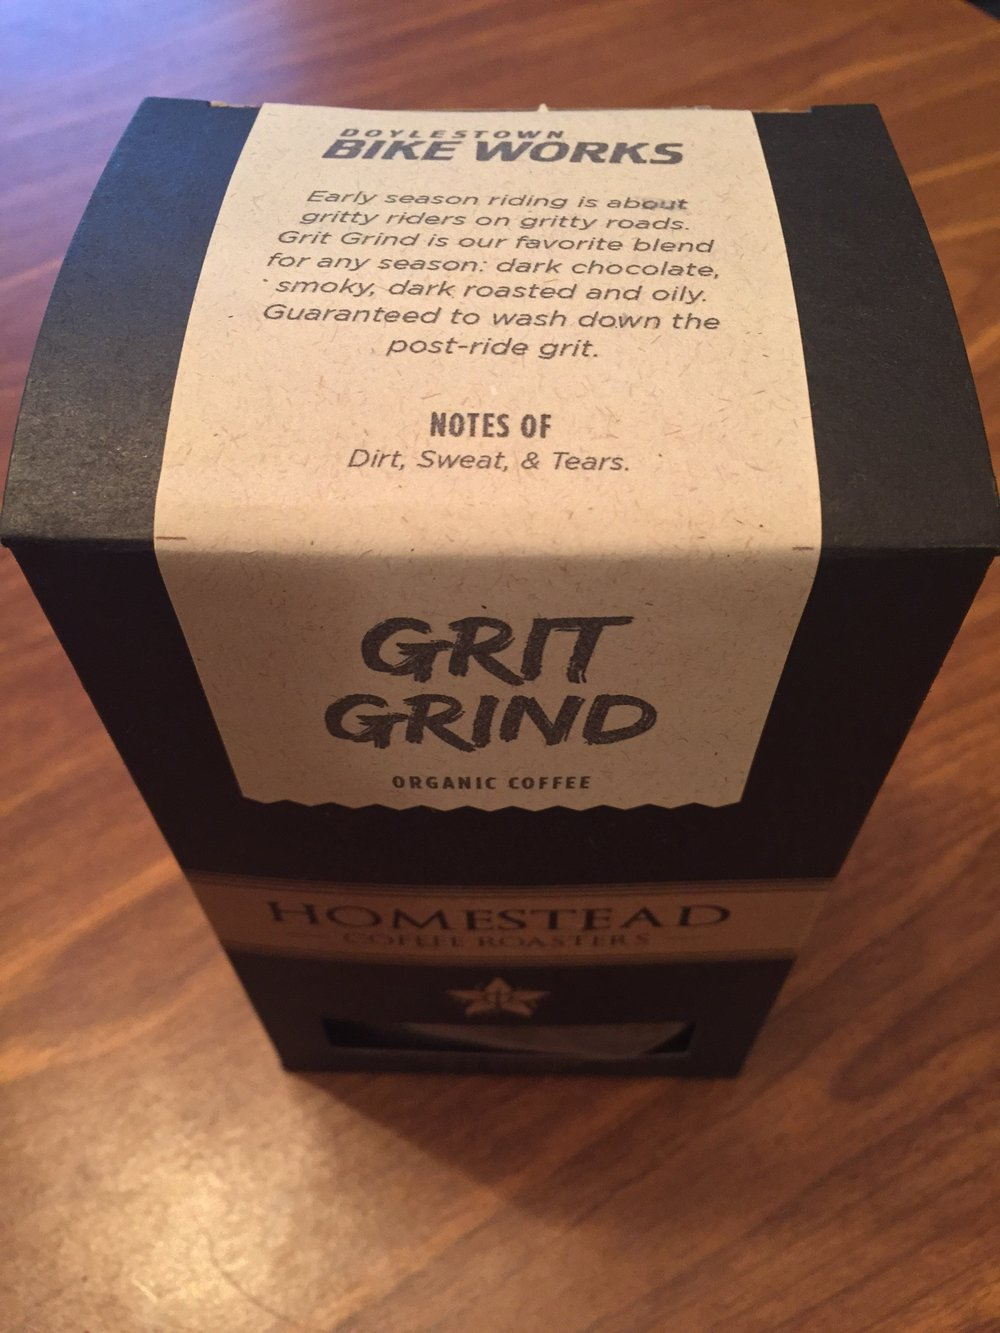 Homestead Coffee's Grit Grind, brewed for Doylestown Bike Works, may be recommended for any season, but winter is where this big dark coffee shines.